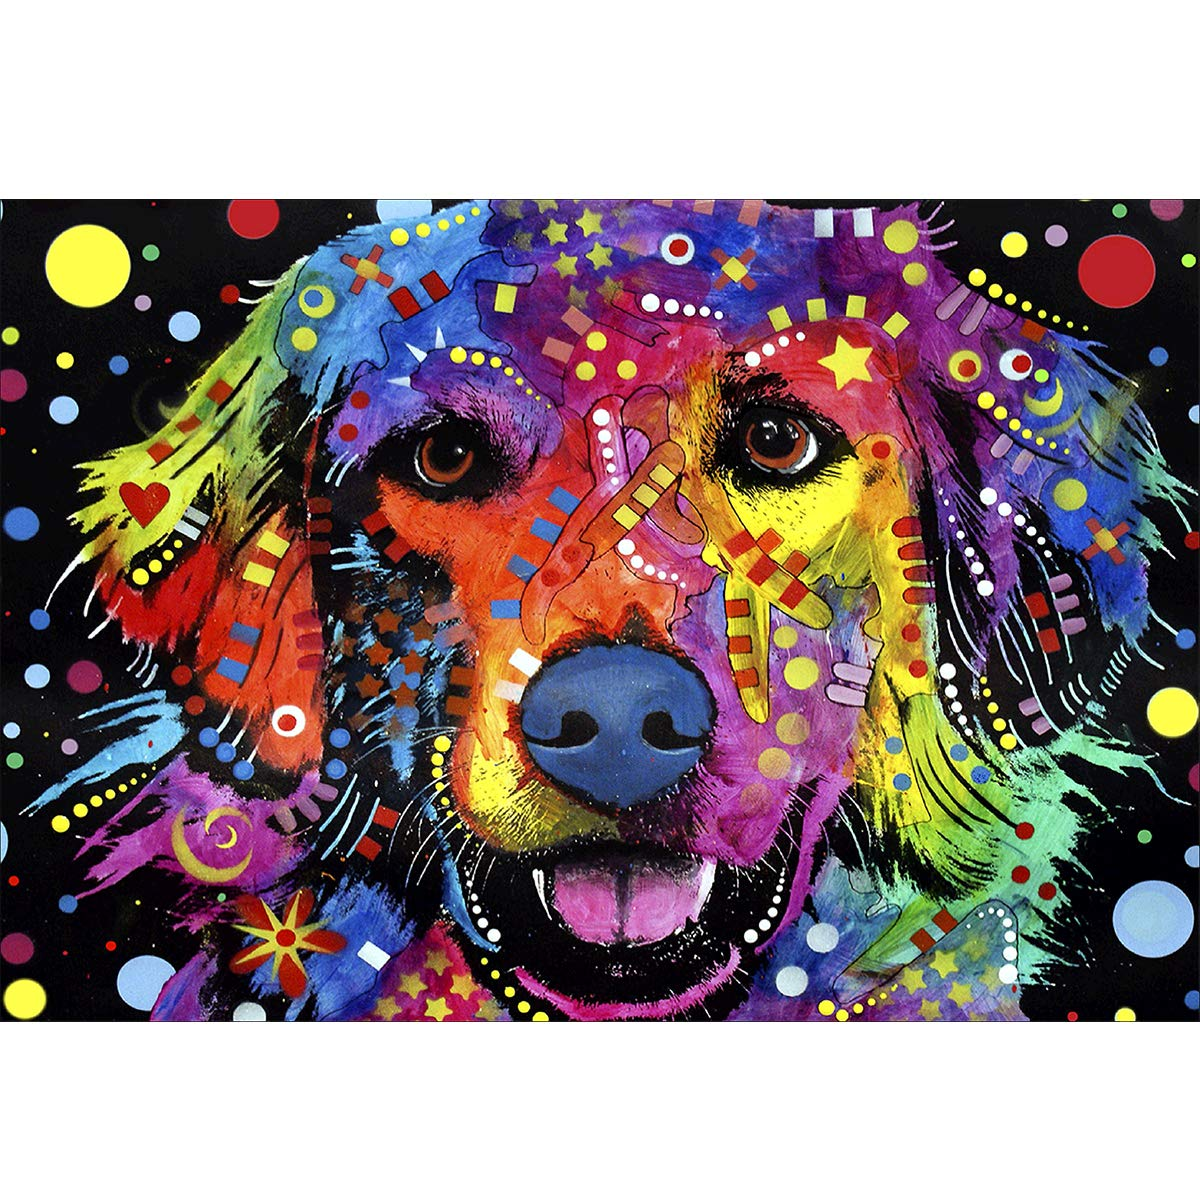 5D Diamond Painting Full Drill Colorful Labrador, Ginfonr DIY Puppy Oil Painting Paint with Diamonds Art Cross Stitch Animal Wall Mosaic Home Decor 12x16 inch (30x40 cm)